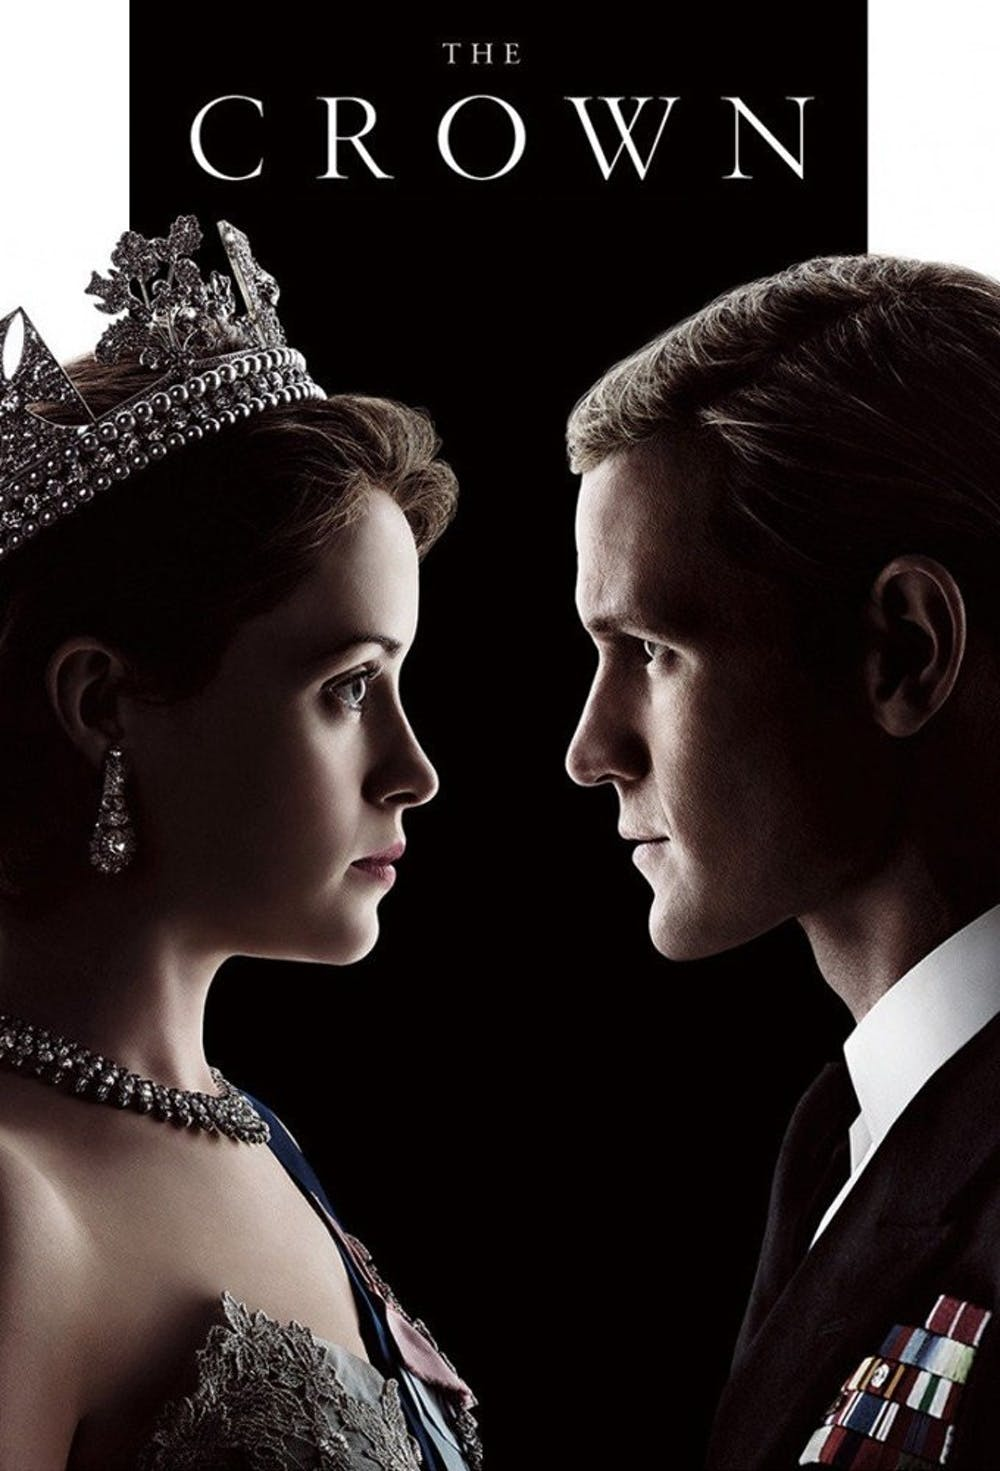 the-crown-poster2.jpg